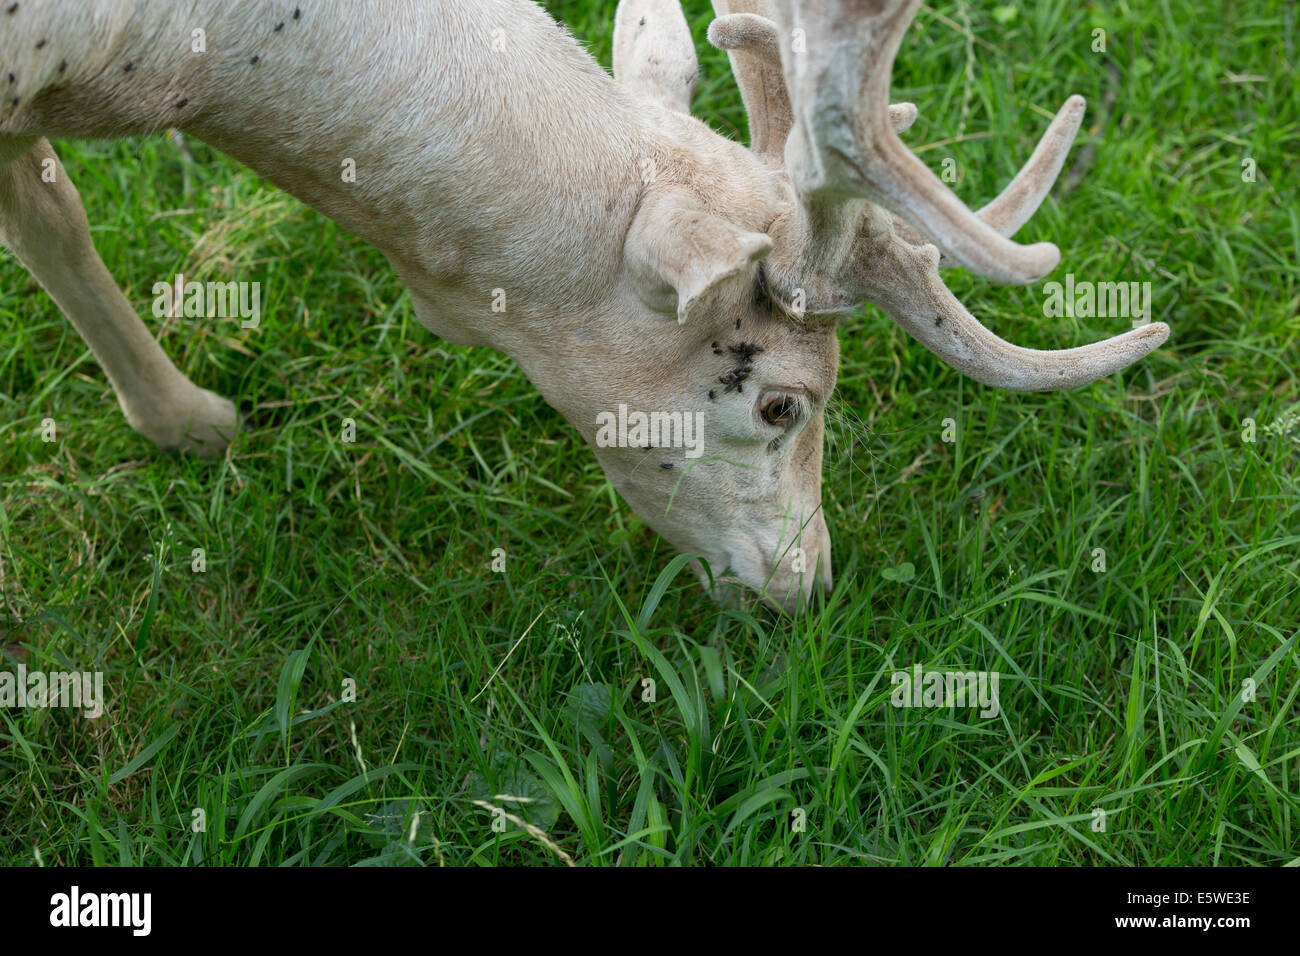 Male fallow deer food searching with sunken head on fresh green grass in summer - Stock Image